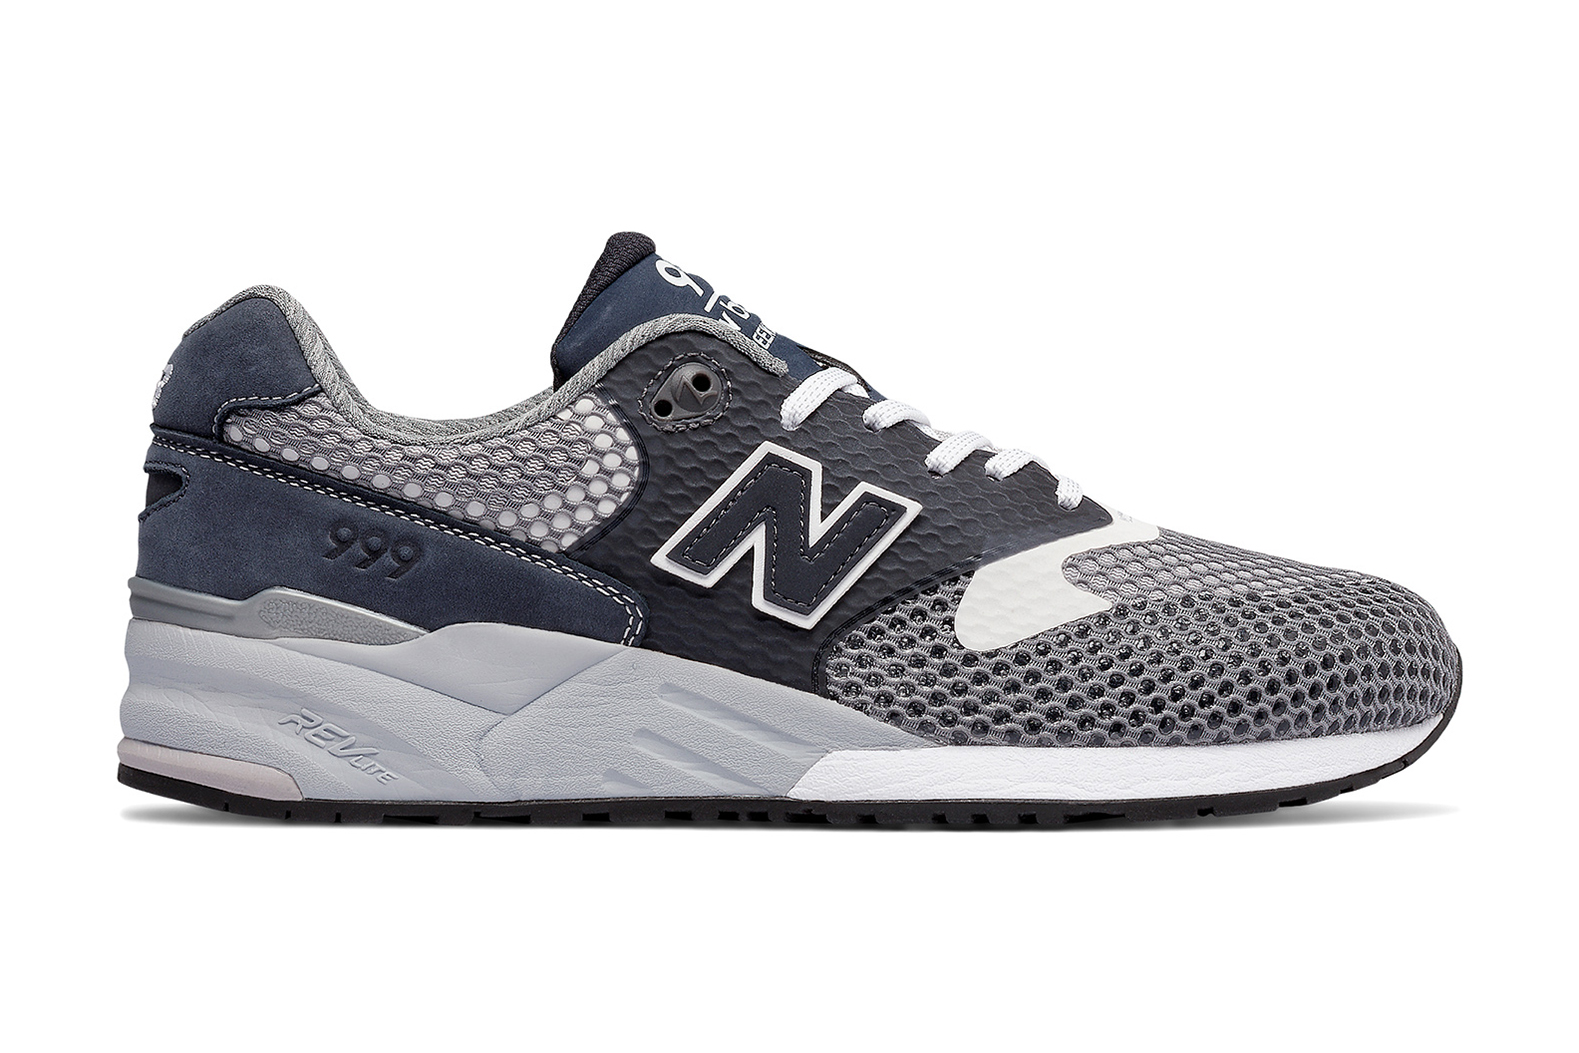 The New Balance 999 Turns 20 With Two Re-Engineered Editions